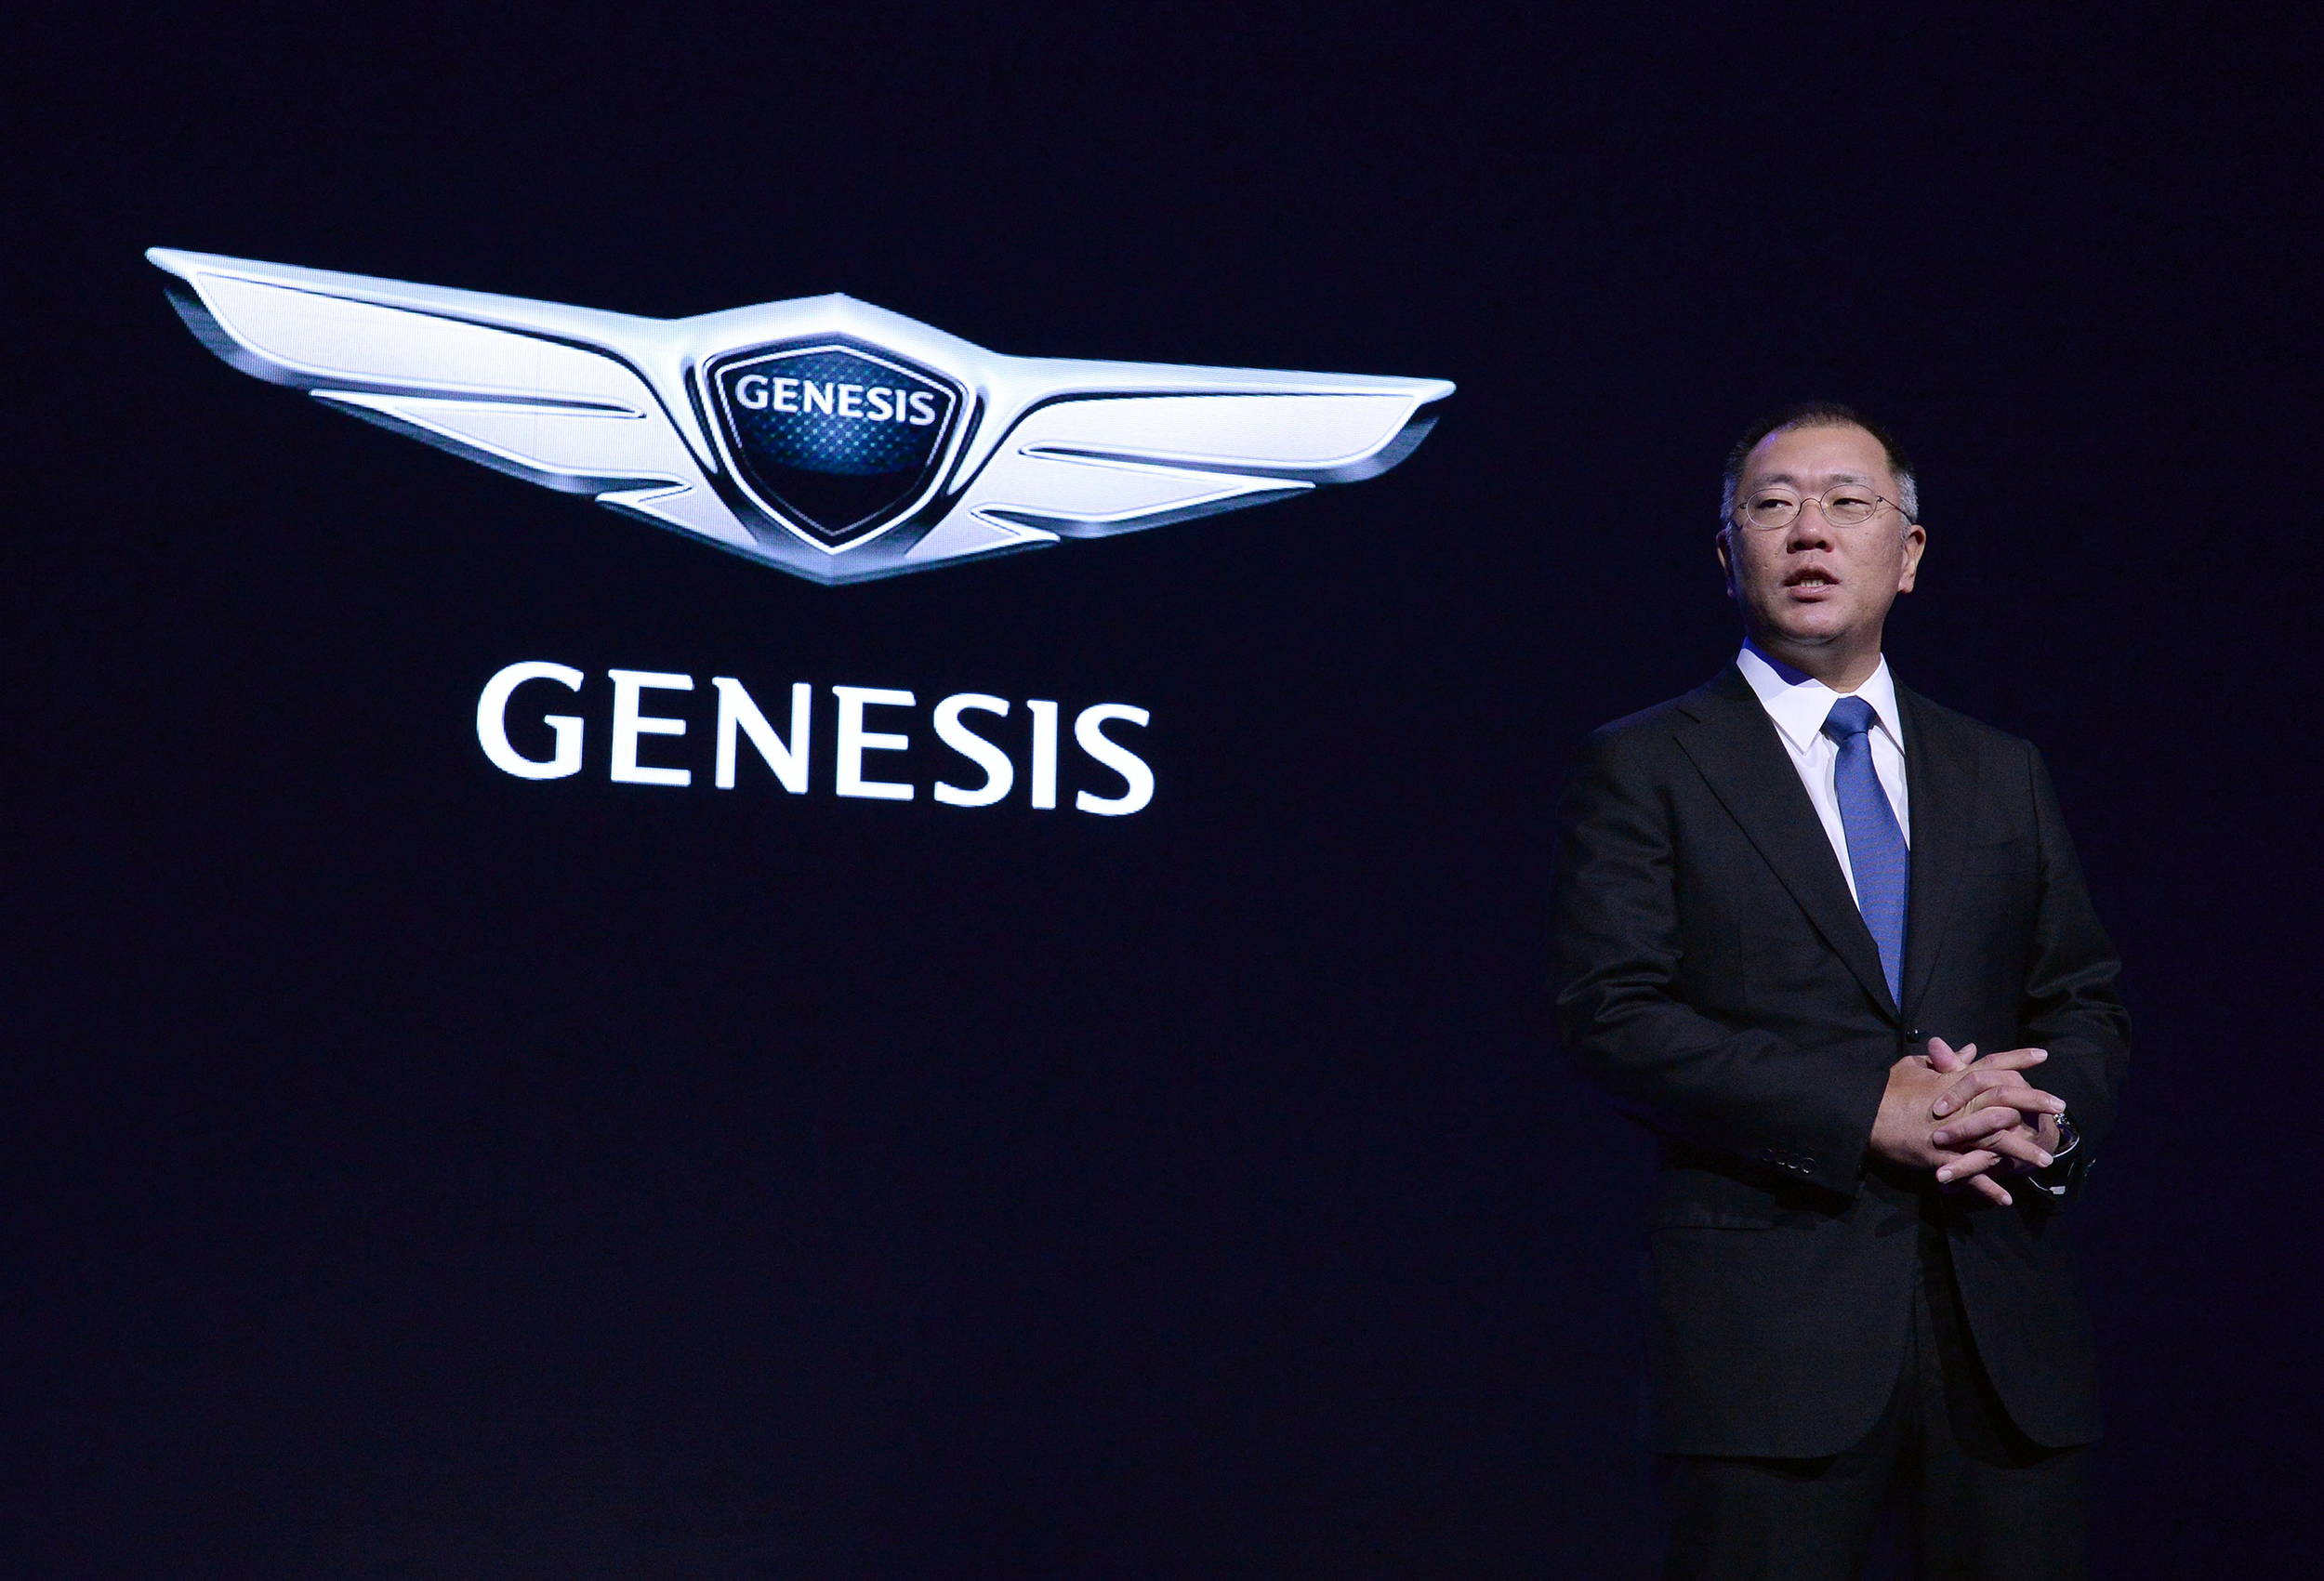 Hyundai launches new Genesis luxury brand